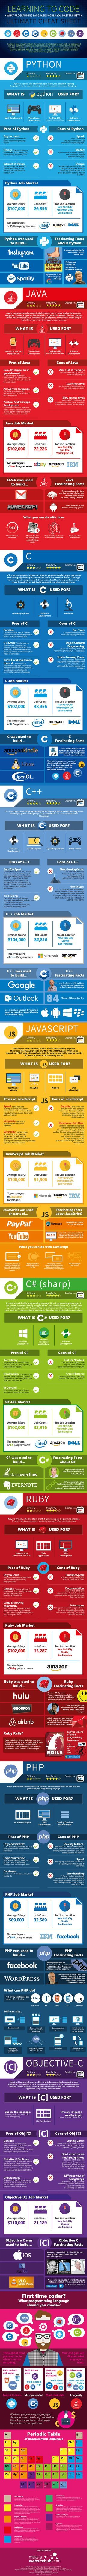 Should You Learn Python, C, or Ruby to Be a Top Coder? (Infographic)   Inc.com